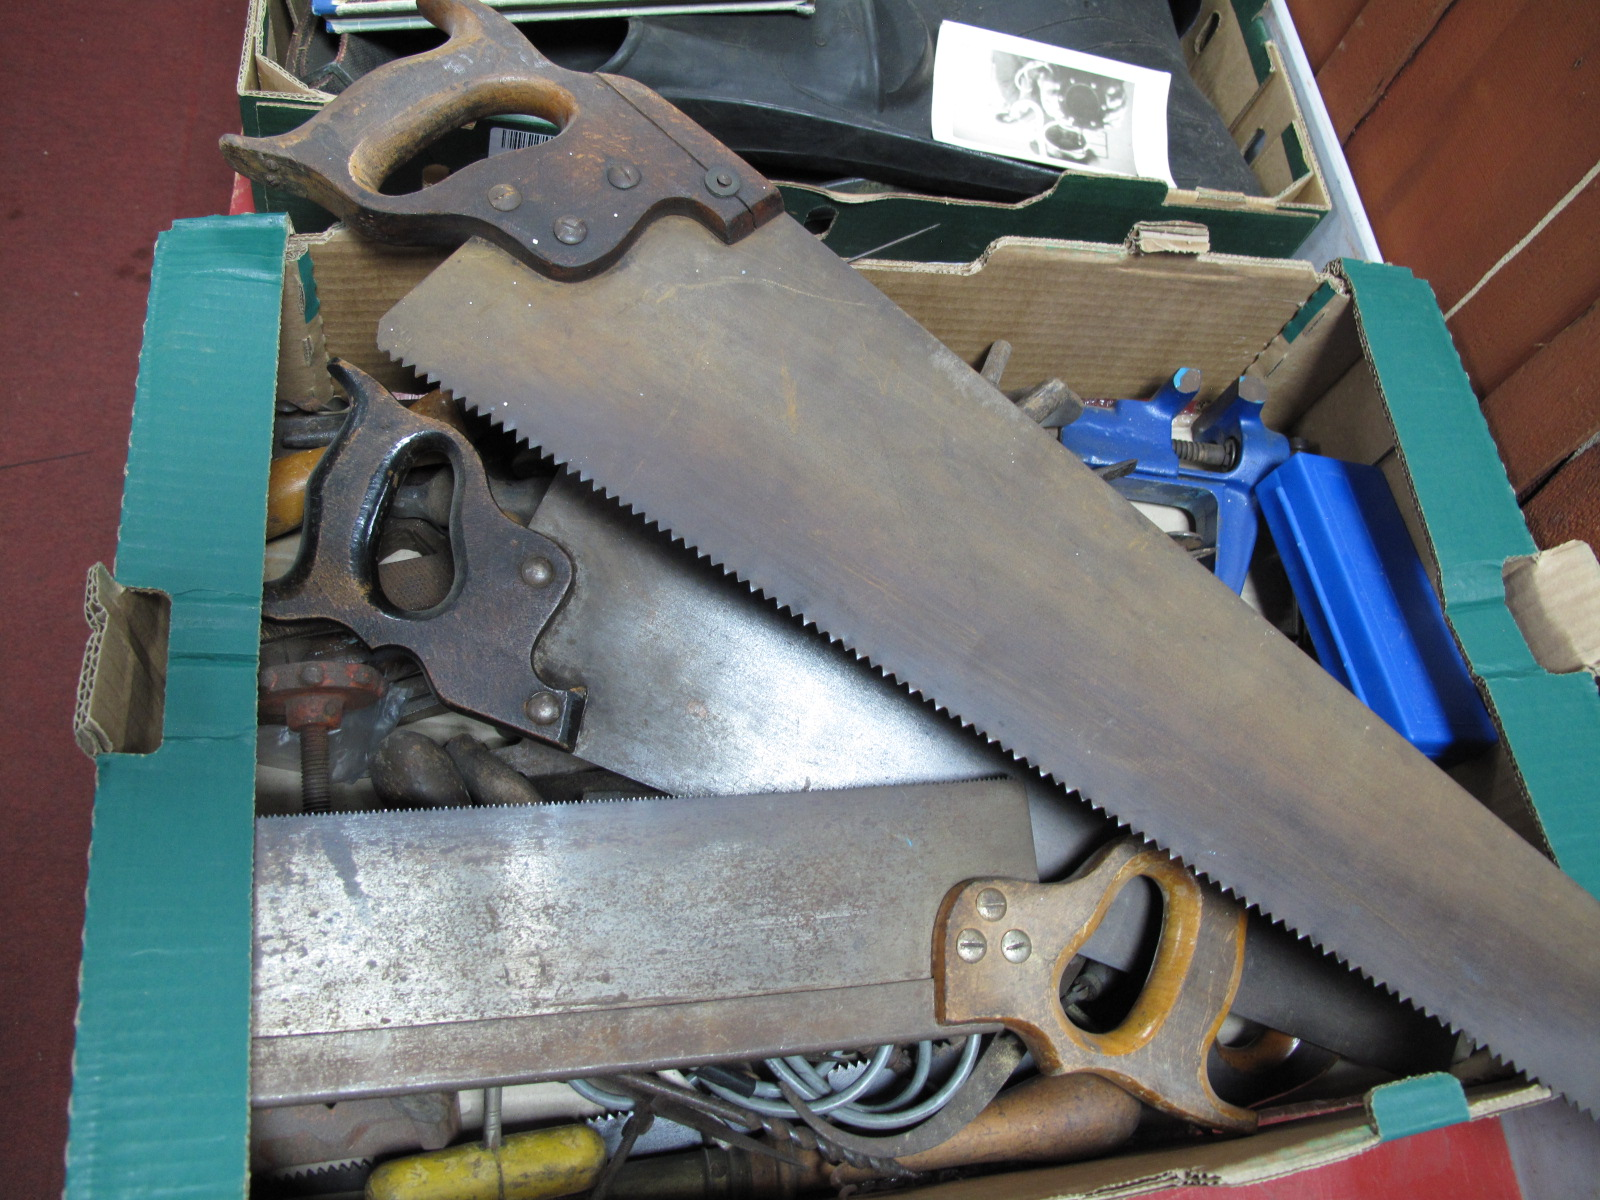 Lot 1059 - Files, table top vice, screwdrivers, saws etc:- One Box